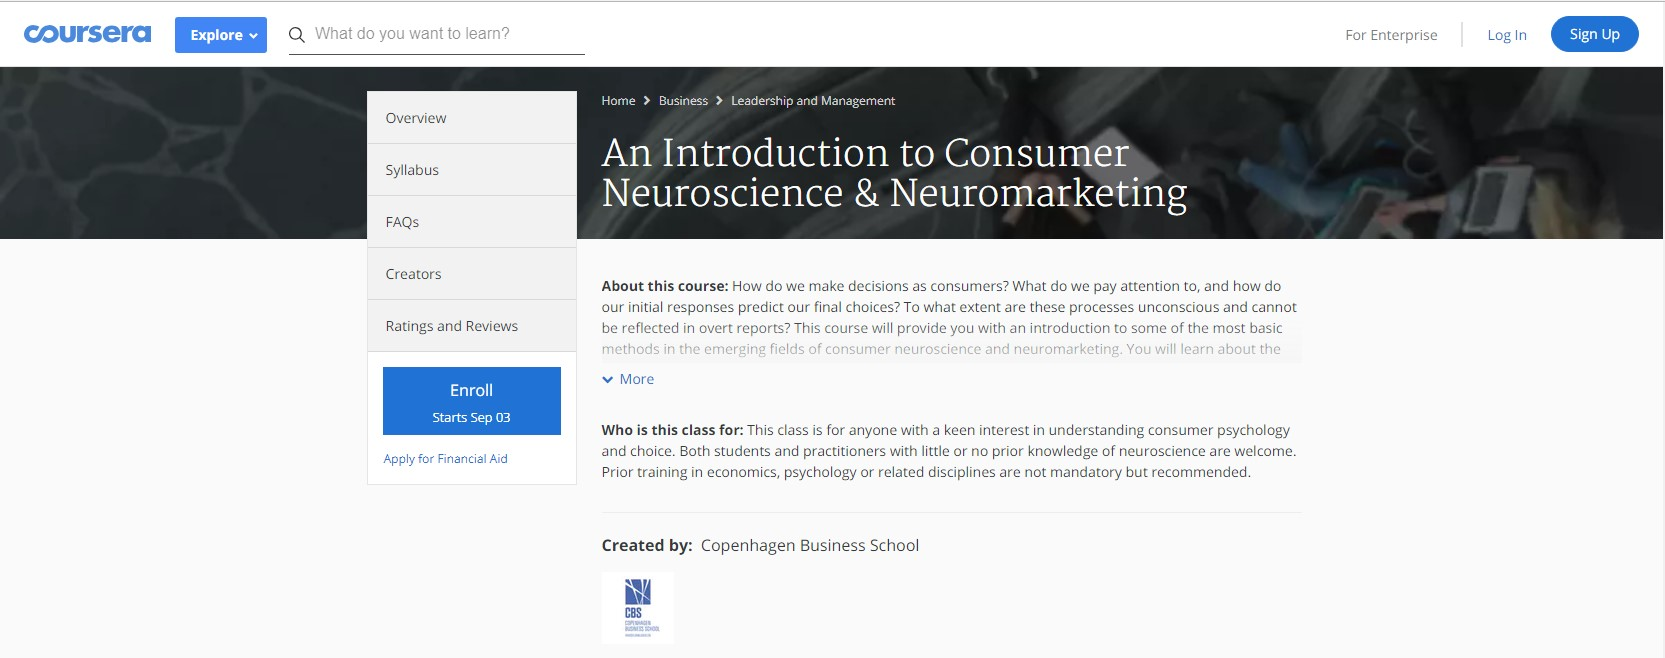 Coursera An Introduction to Consumer Neuroscience & Neuromarketing neuroeconomics